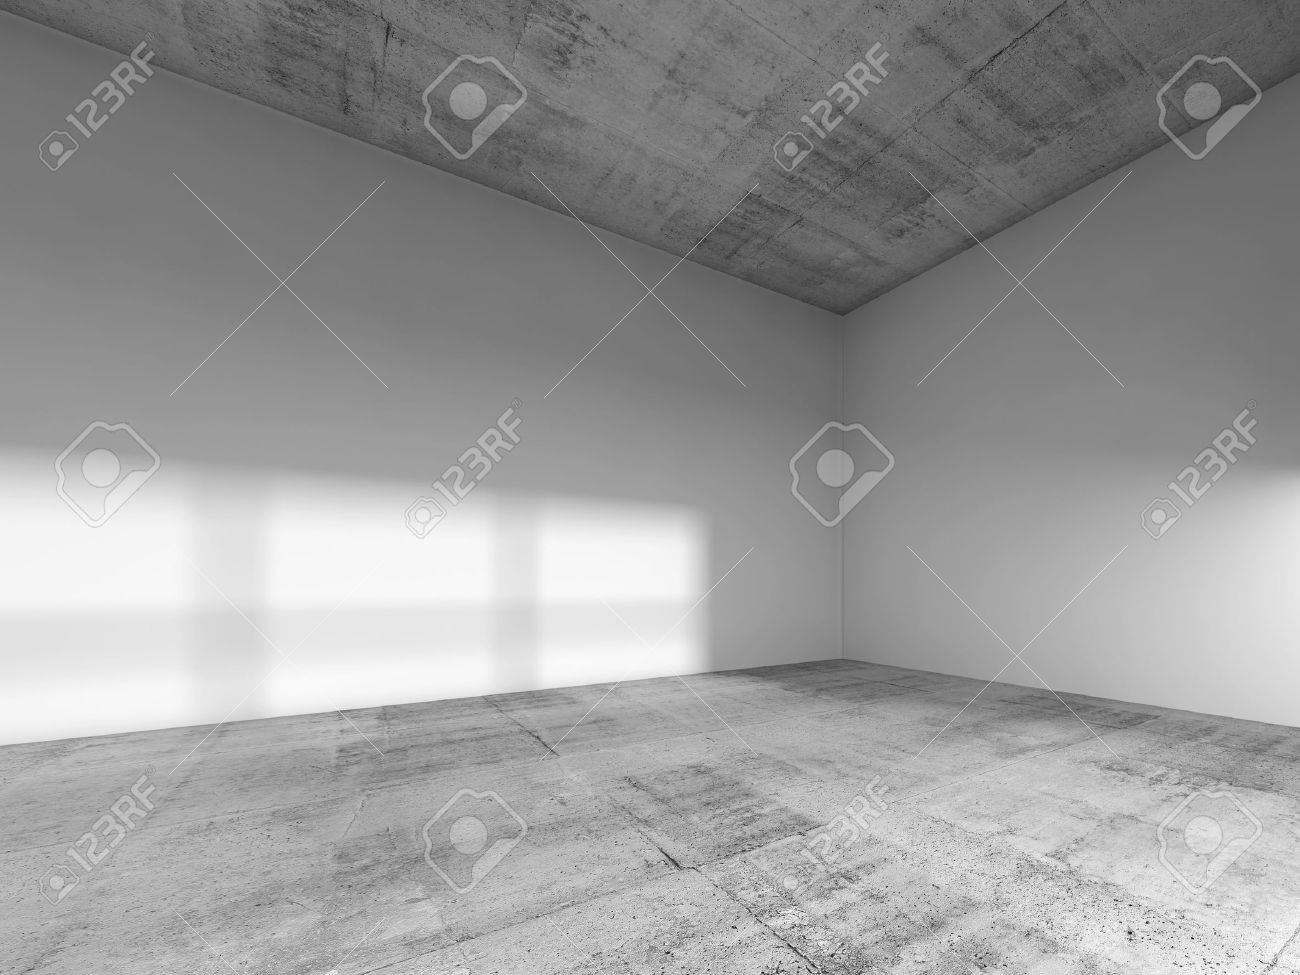 Abstract Interior Of An Empty Room With White Painted Walls Rough Concrete Floor And Ceiling